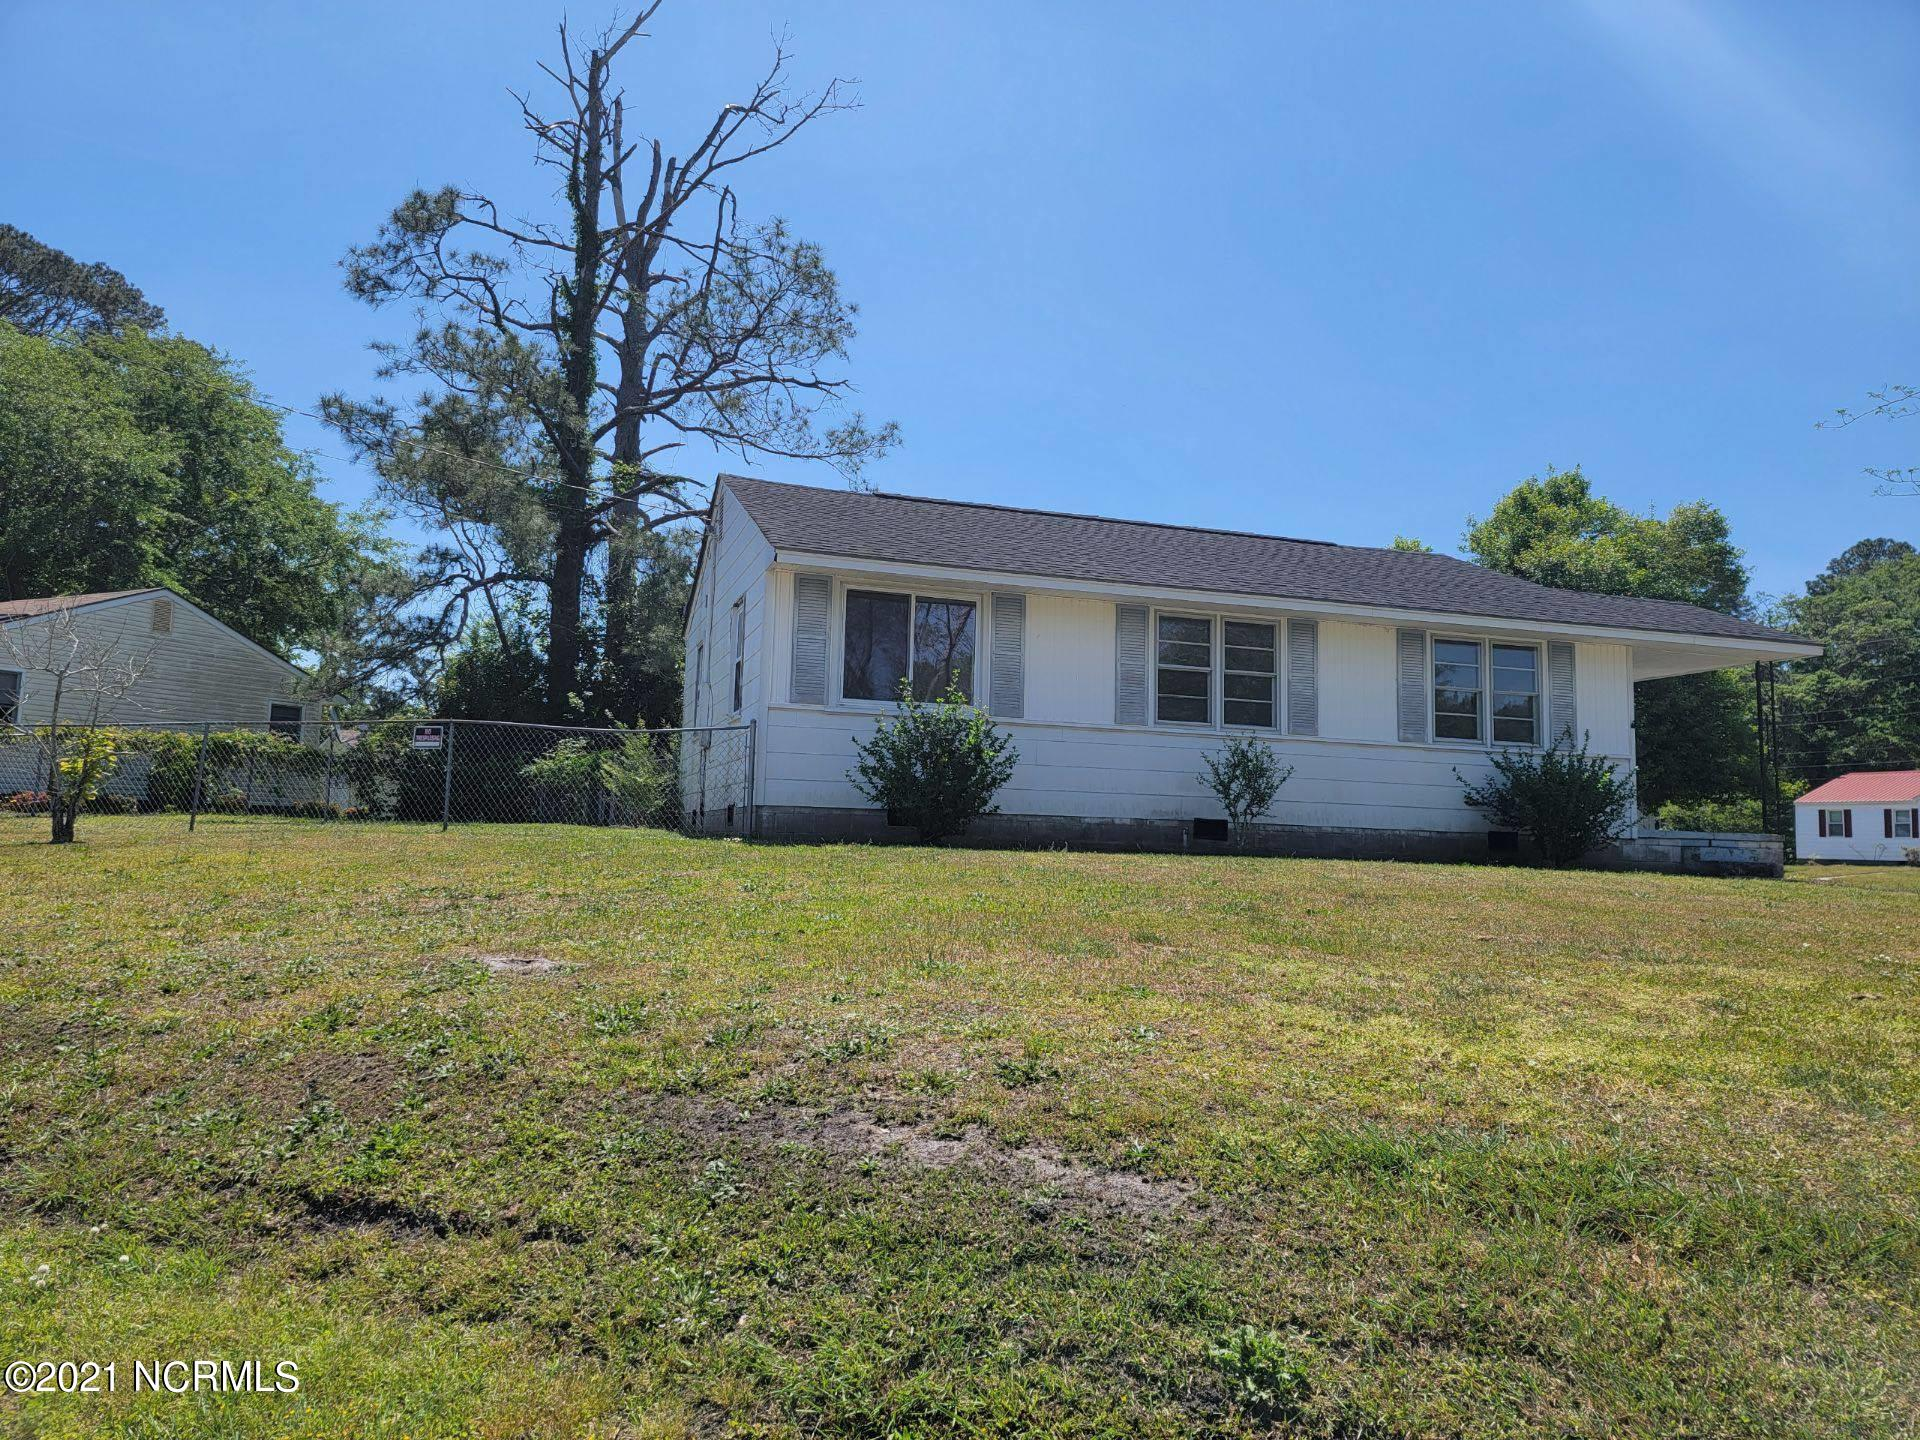 3 bedroom 1 bath home located in the heart of Jacksonville. Wood flooring in living room and bedrooms. Close to bases, shopping and entertainment.